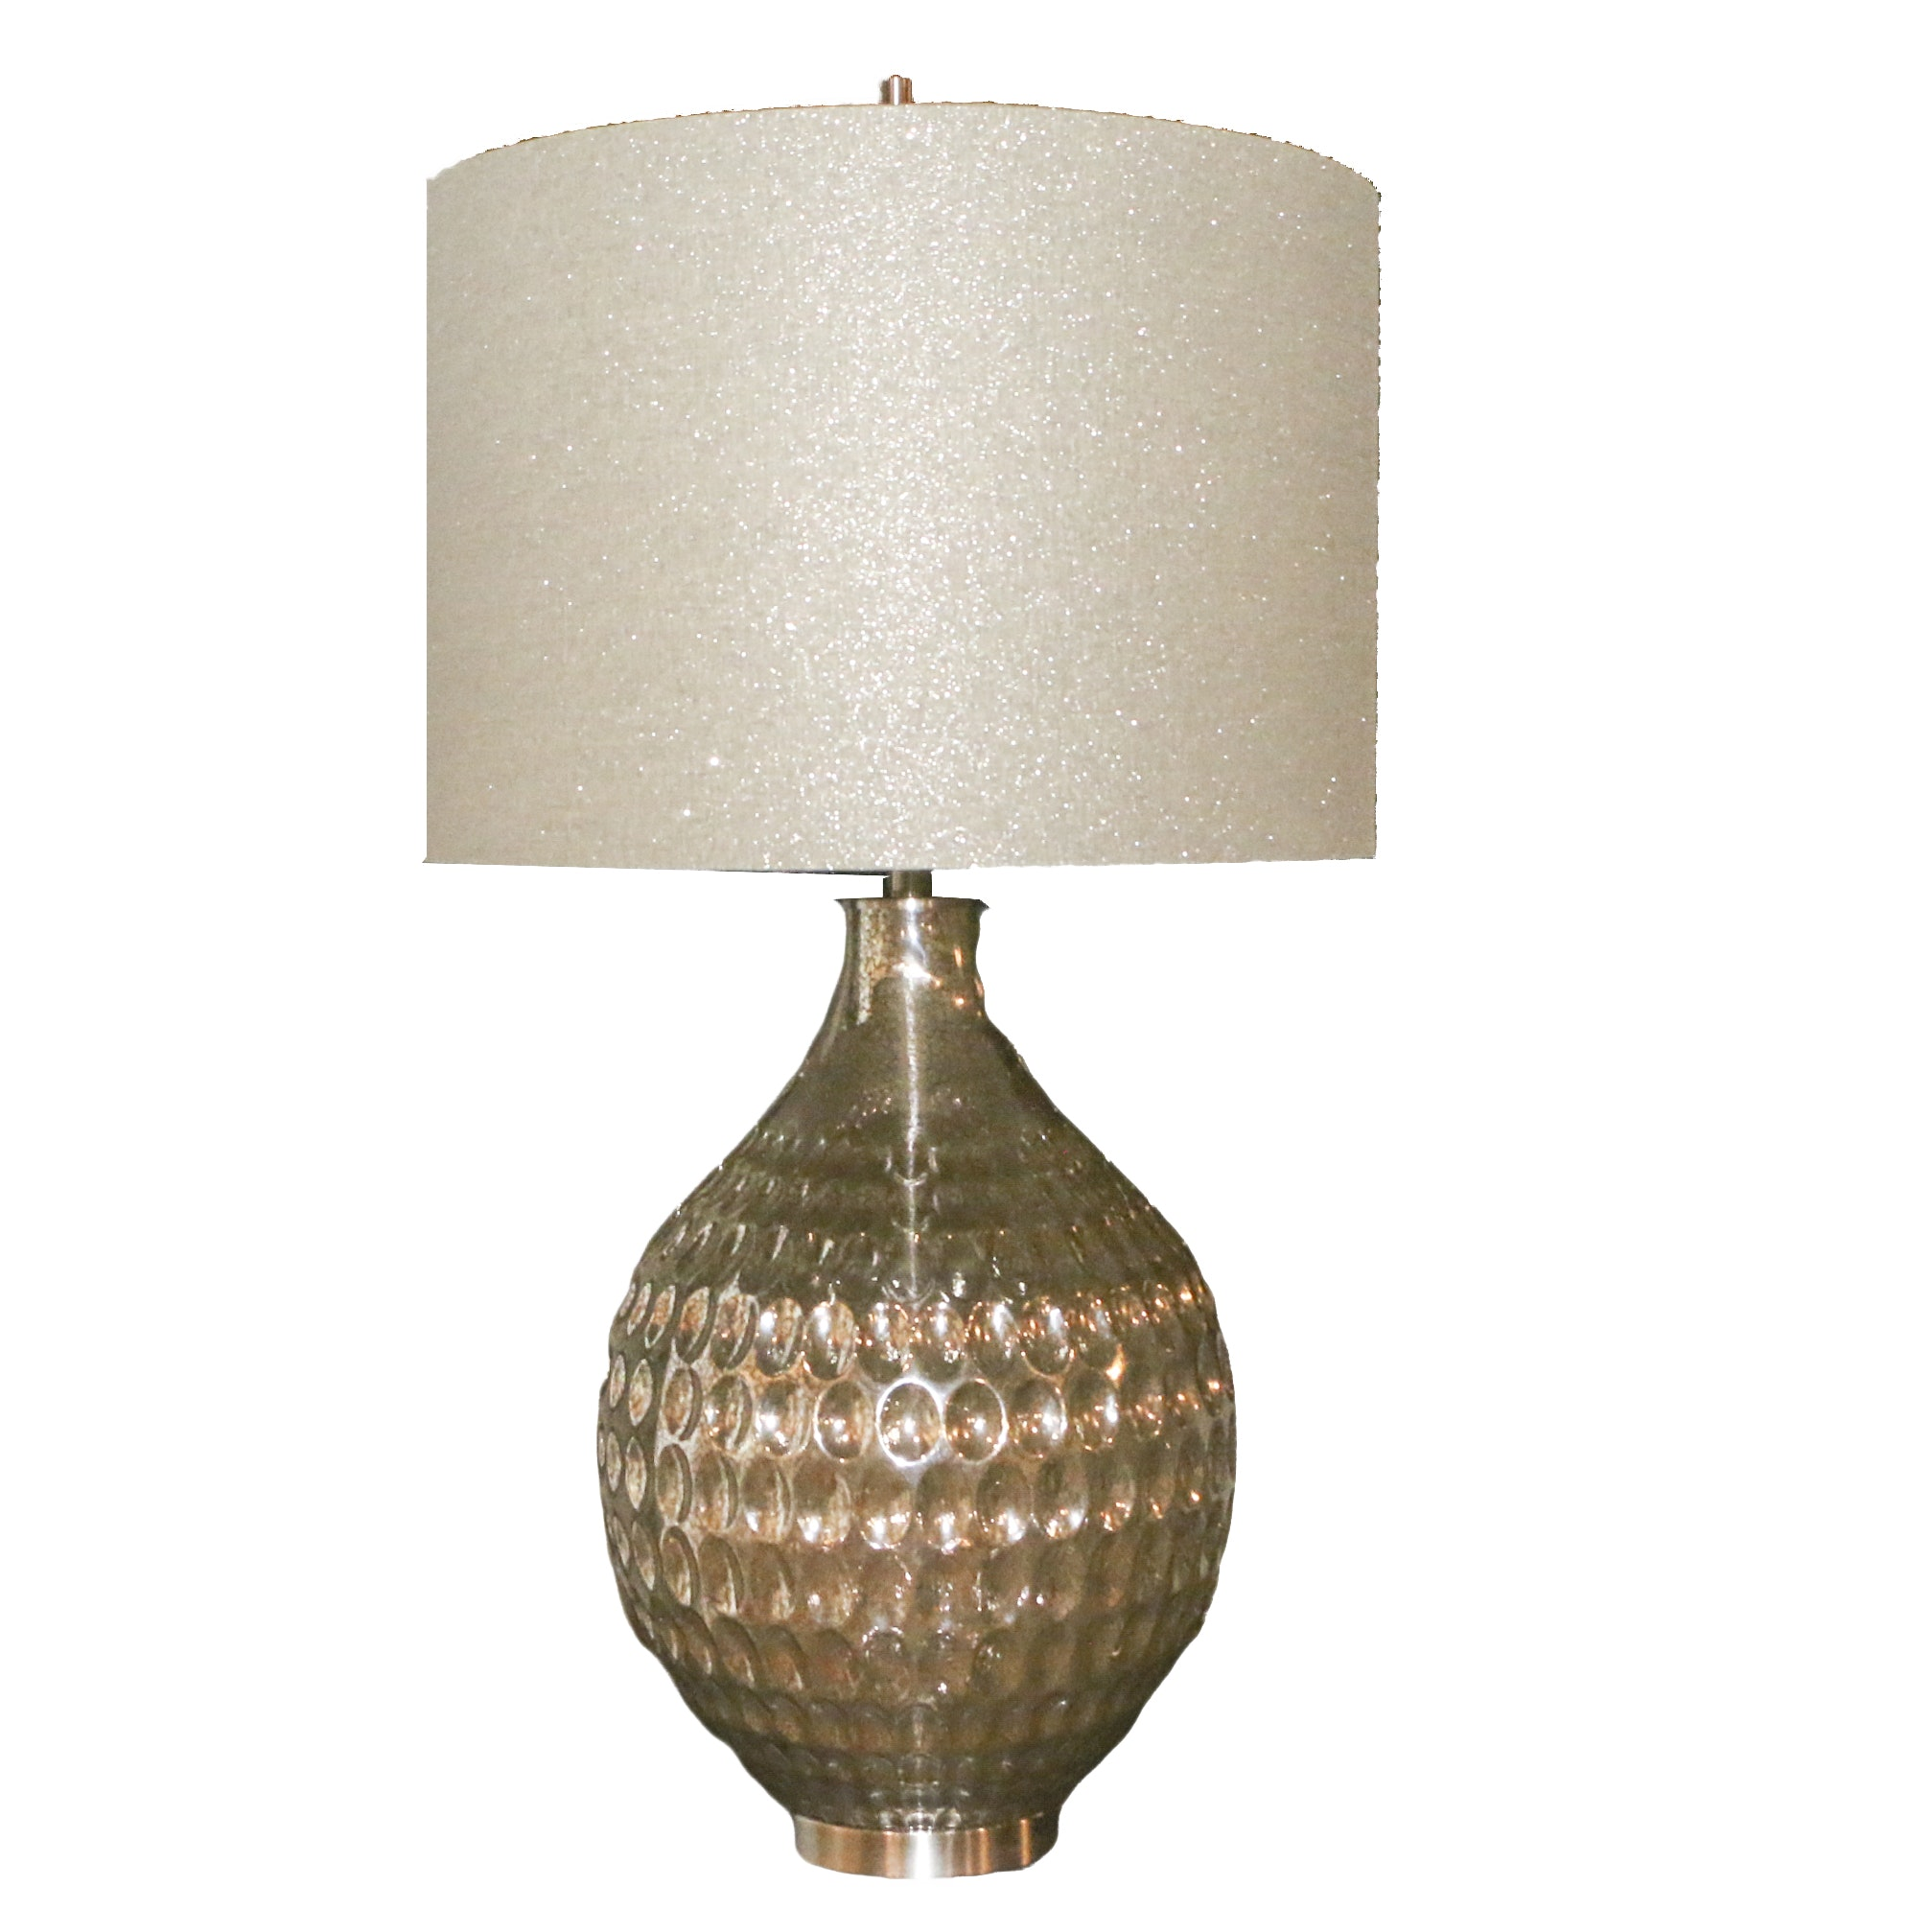 Metallic Table Lamp with Barrel Shade